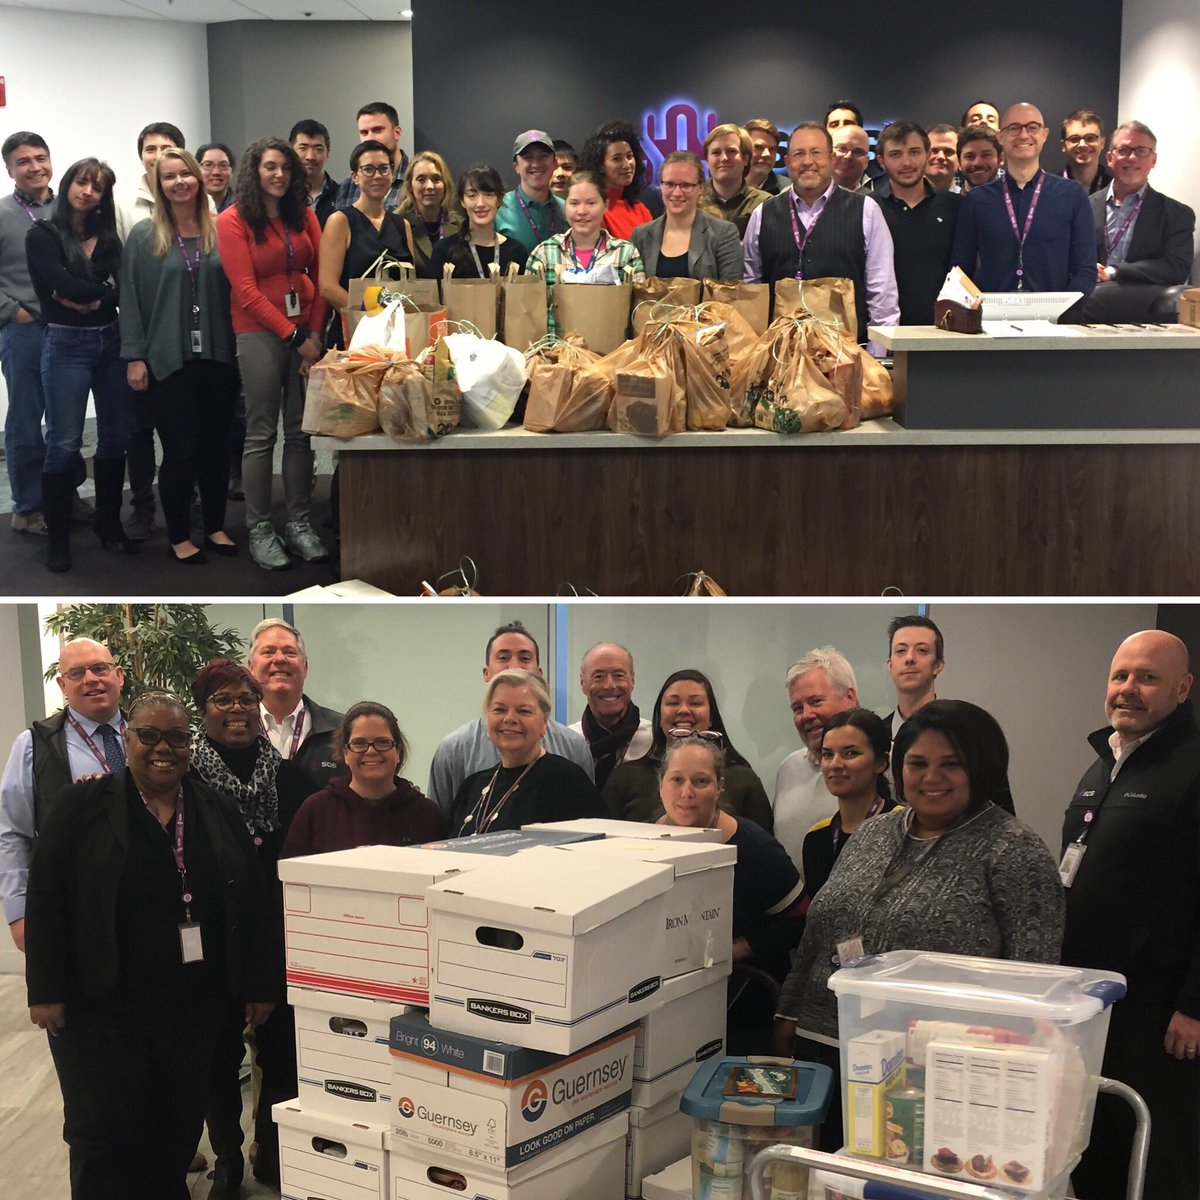 Team SOSi delivered the makings for #Thanksgiving meals for 50 #NoVA families served by our community partner @Cornerstonesva. They were collected and packaged by our Vienna and Reston colleagues who embrace our company-wide commitment to community service. #ChallengeAccepted